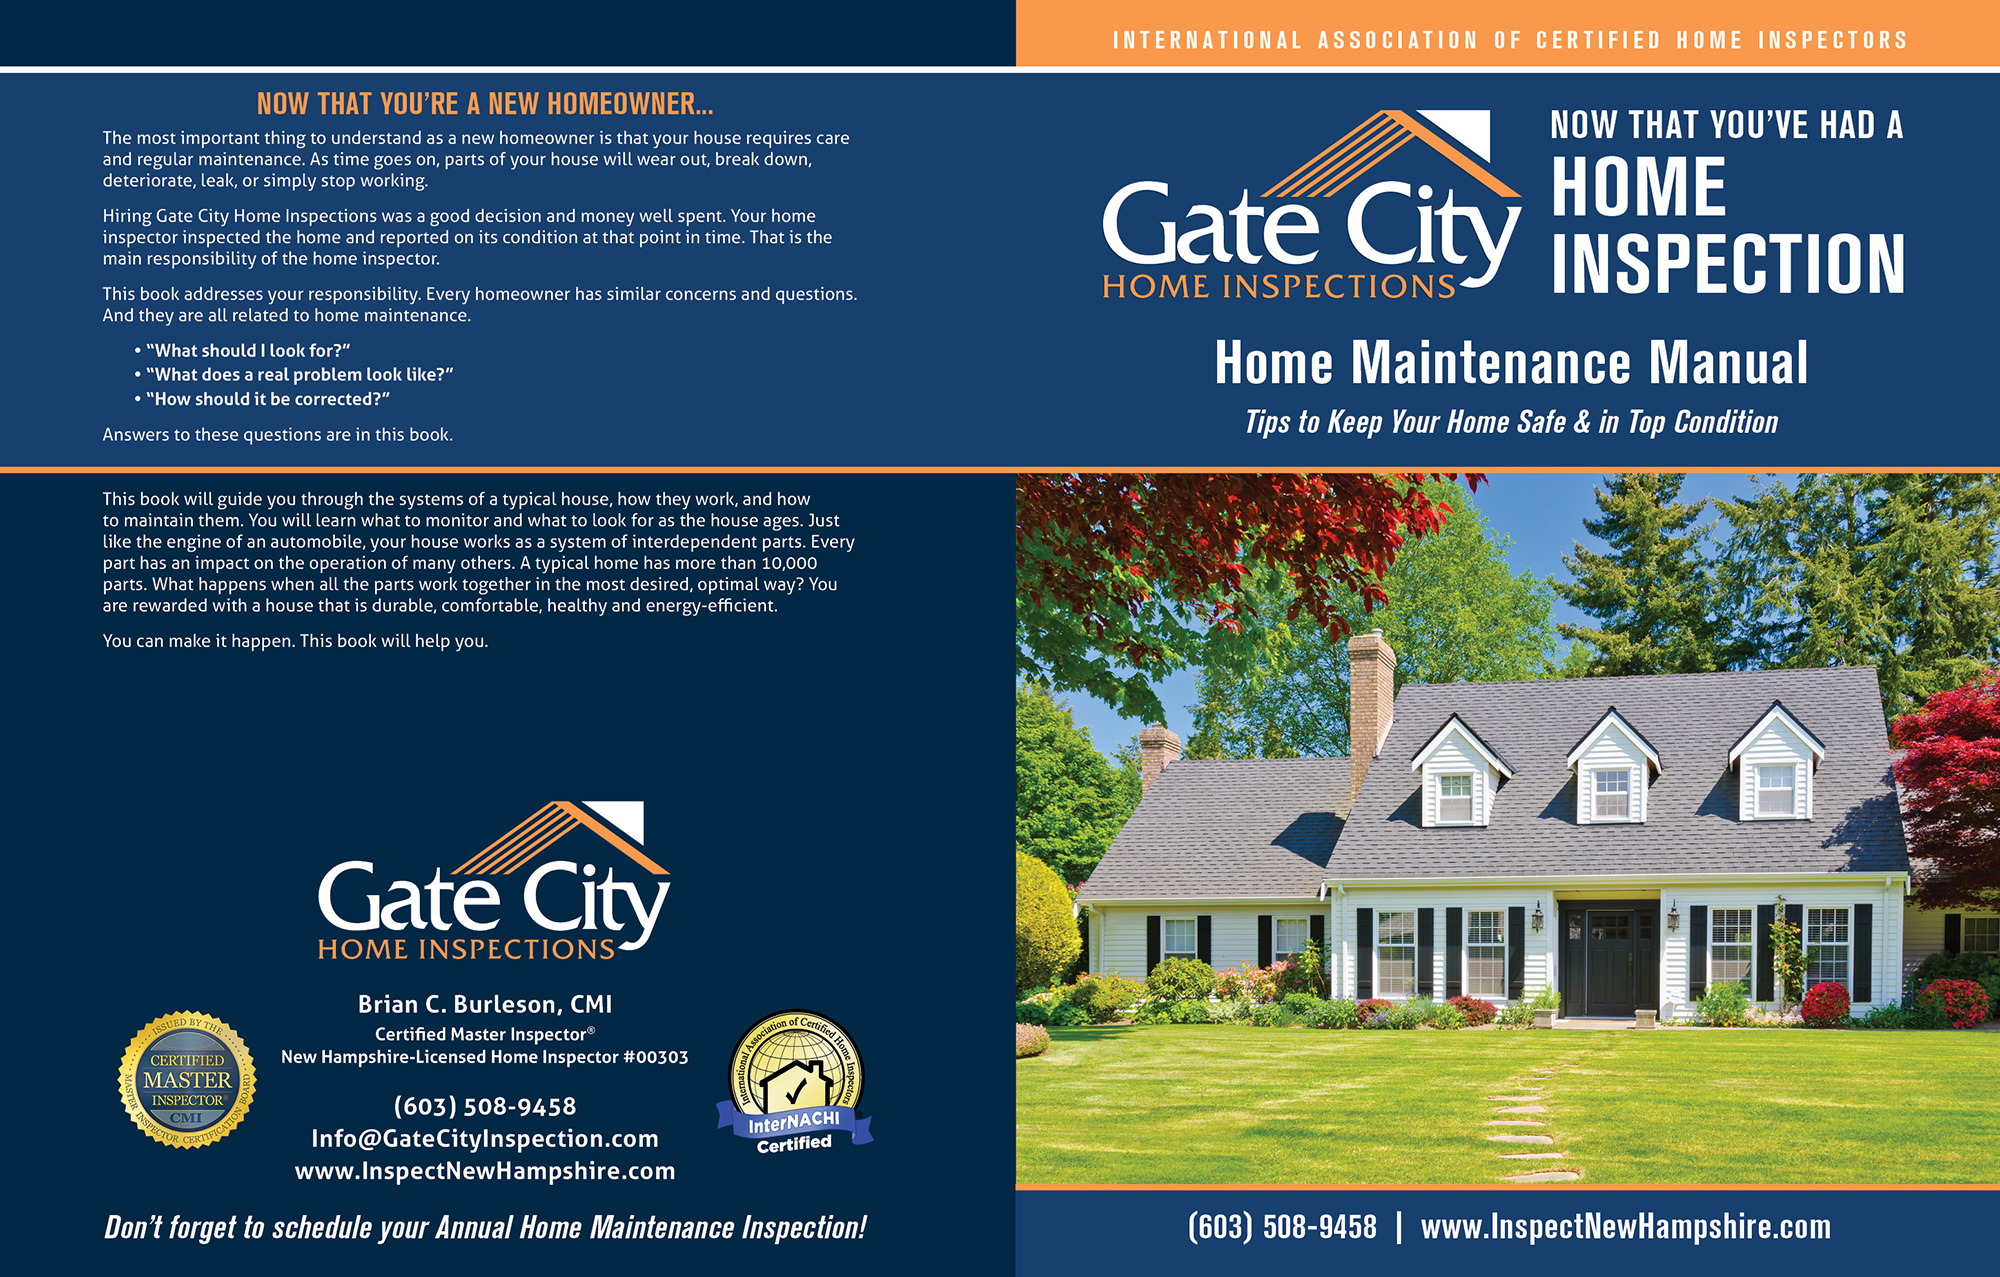 Custom Home Maintenance Book for Gate City Home Inspections.